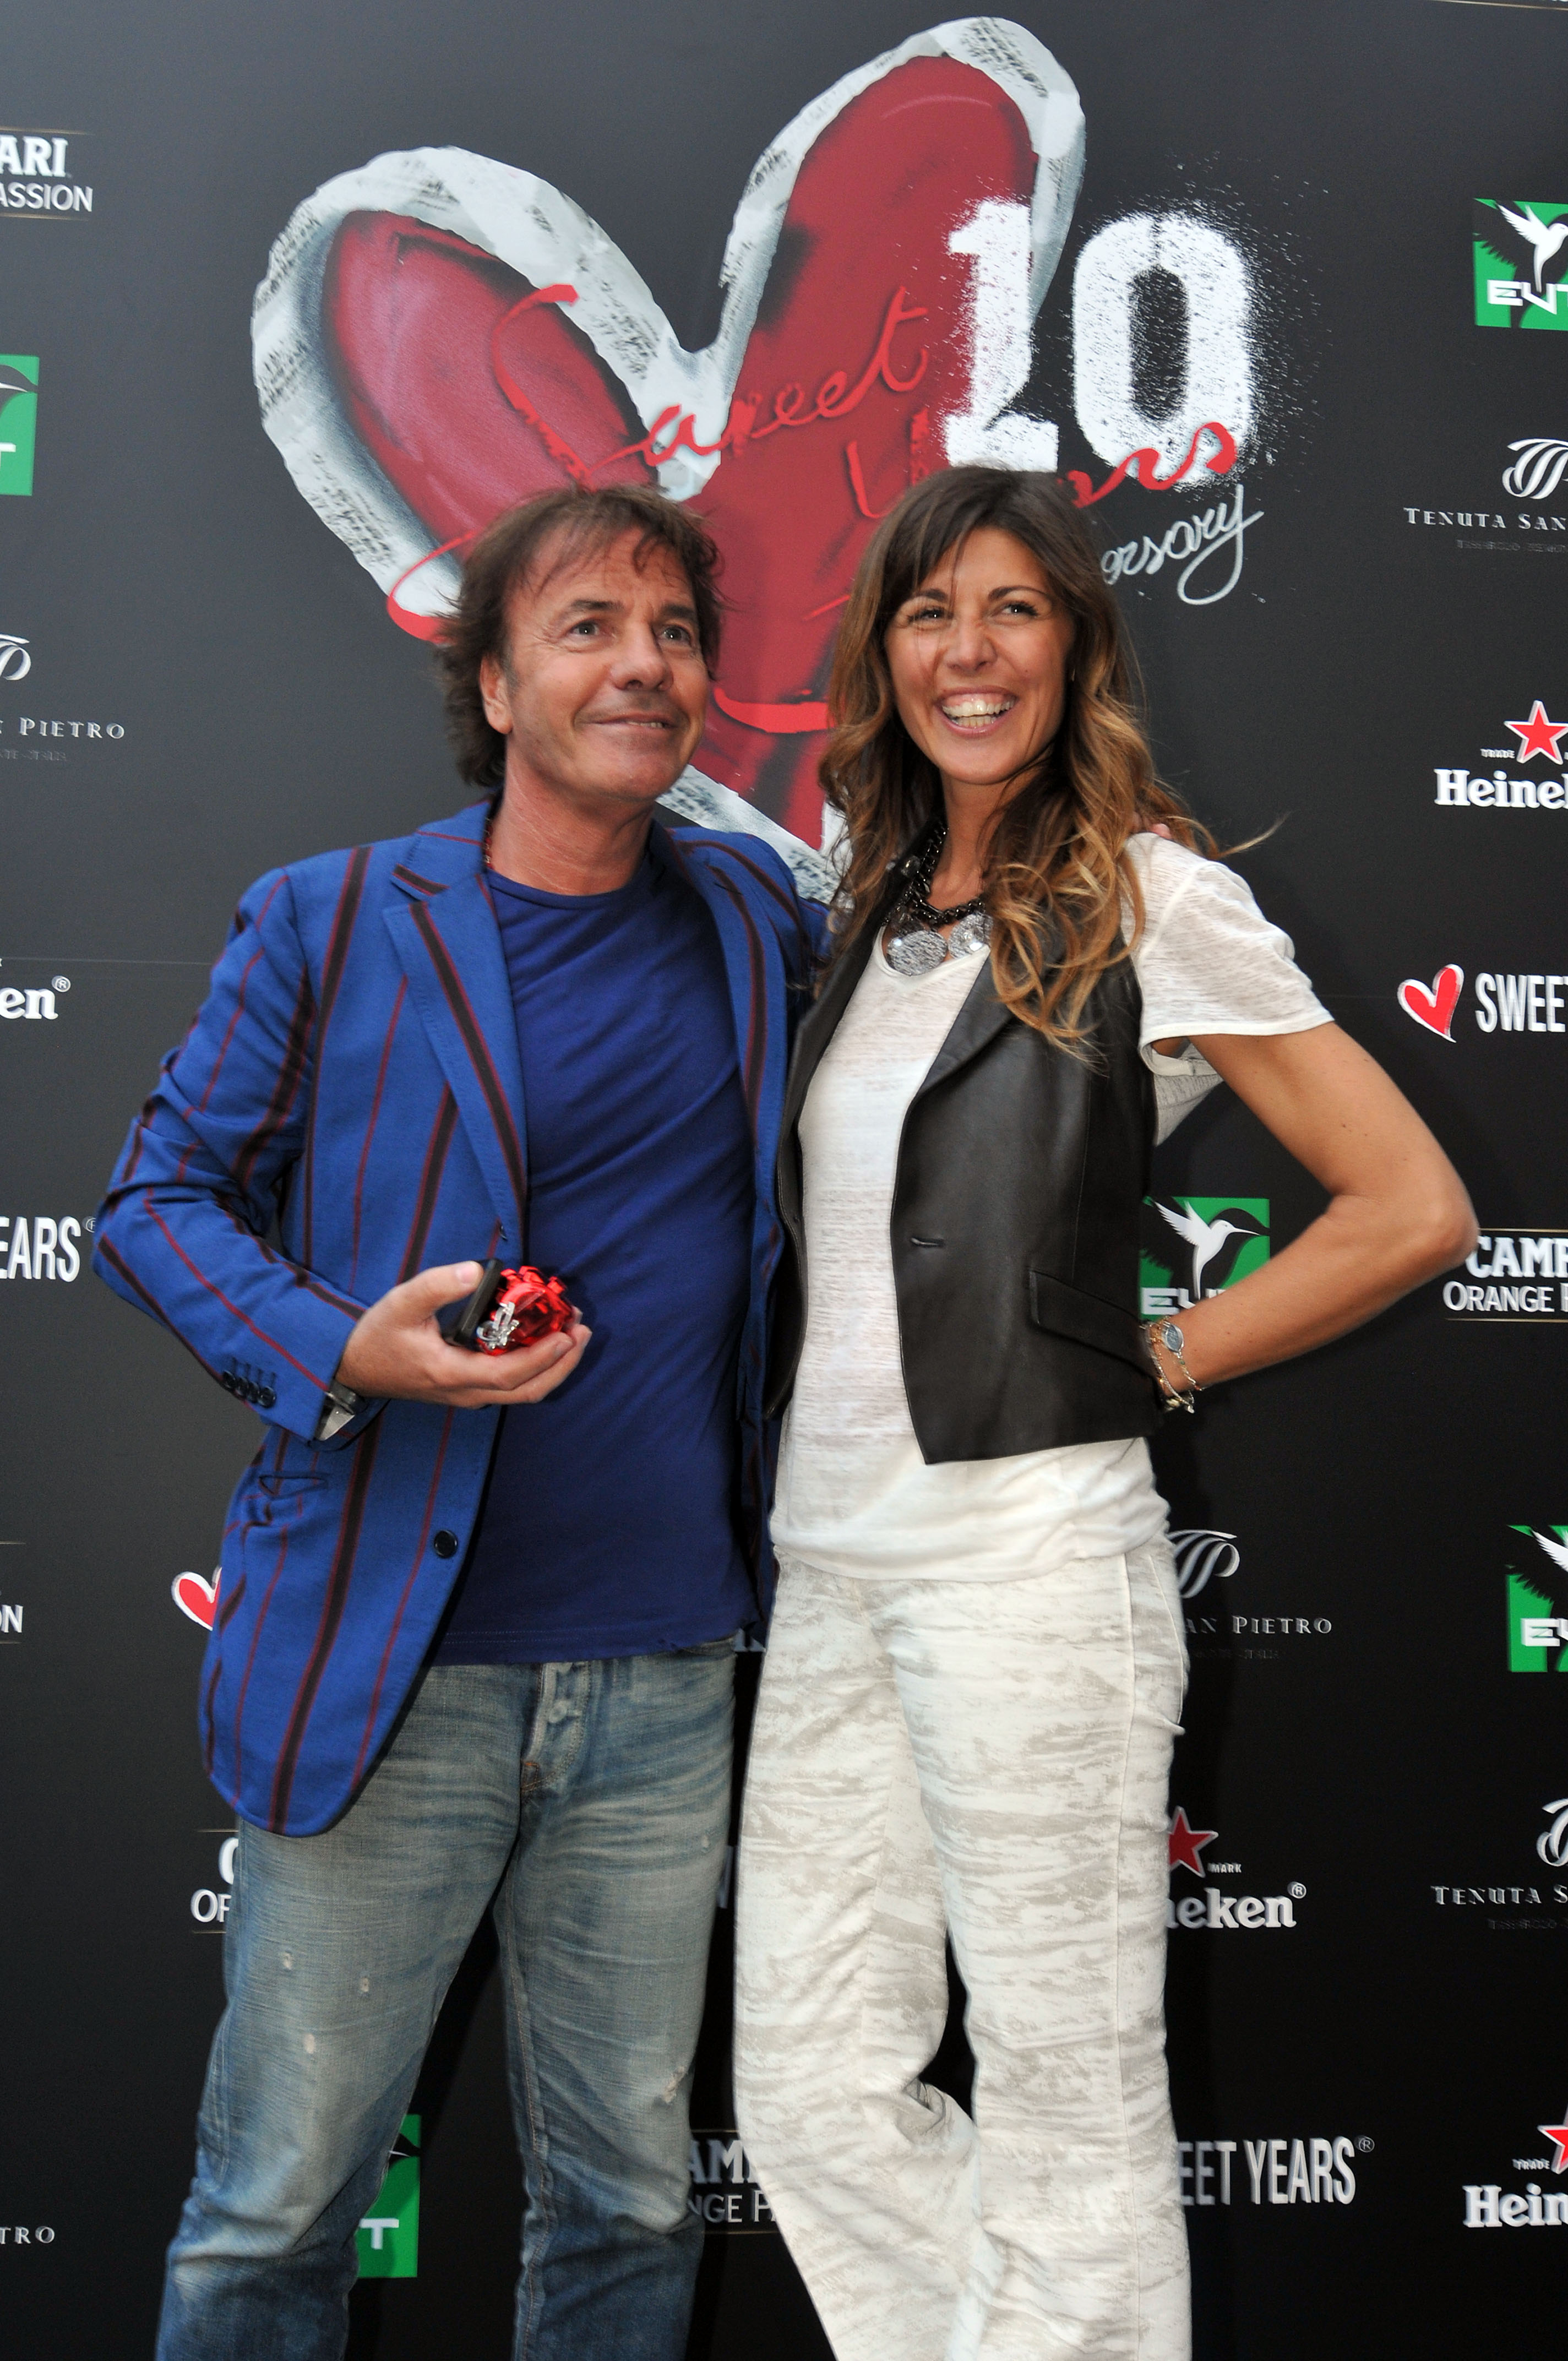 mauro russo and alessandra grillo